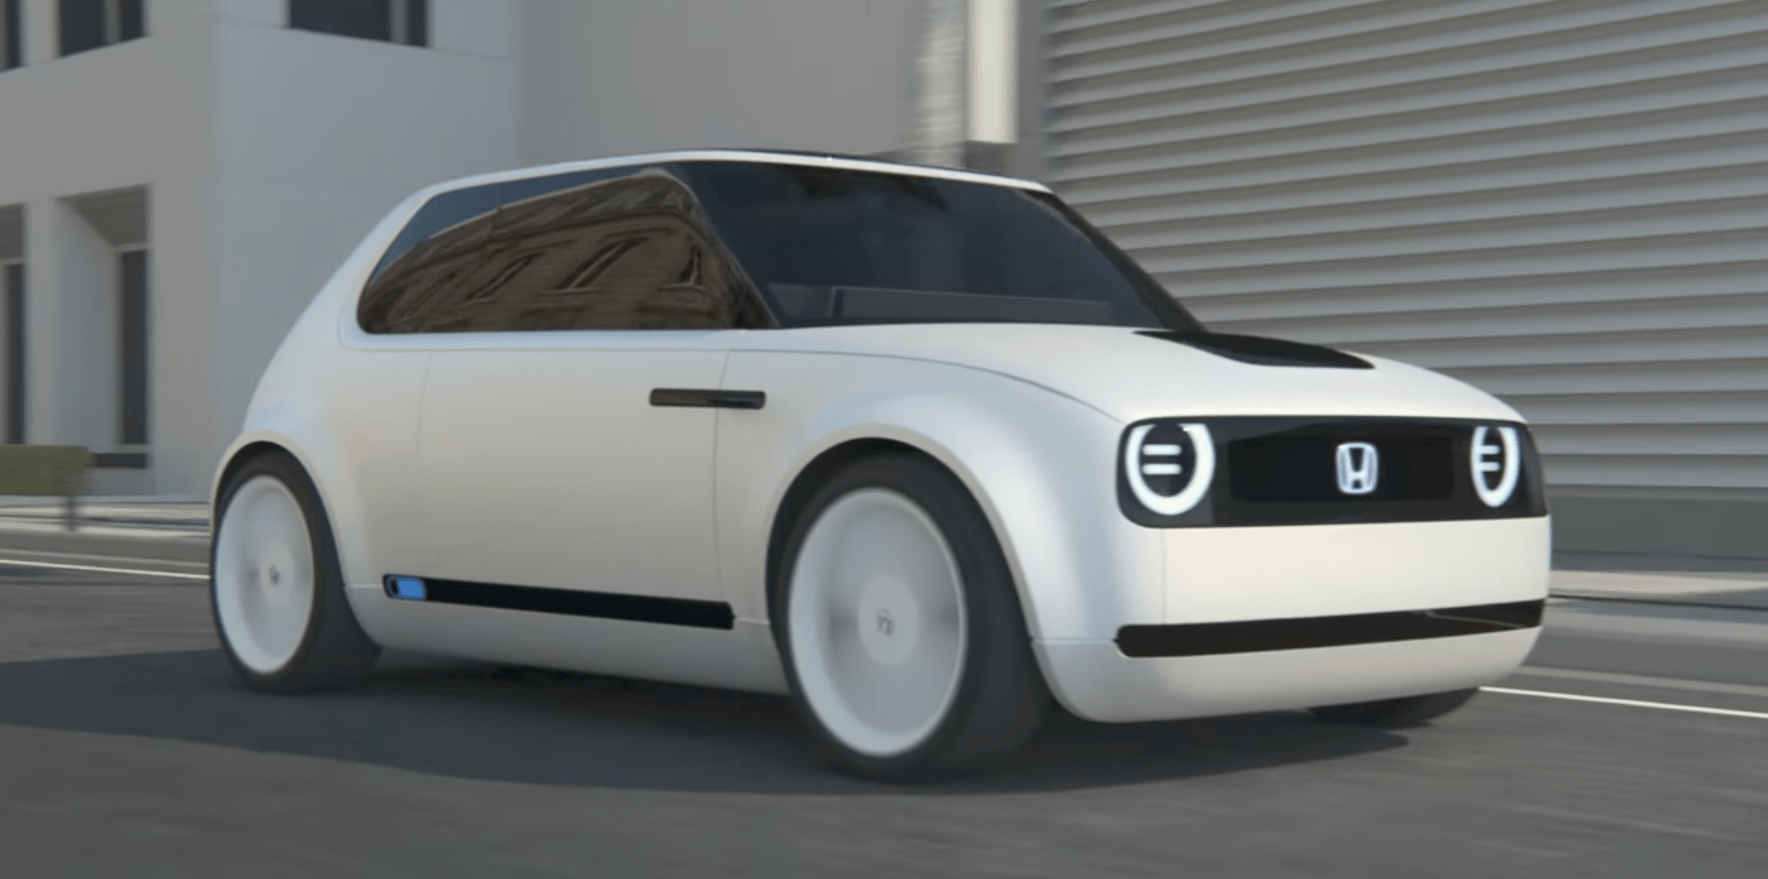 Honda Delays Its Fun Retro Looking All Electric Vehicle To 2020